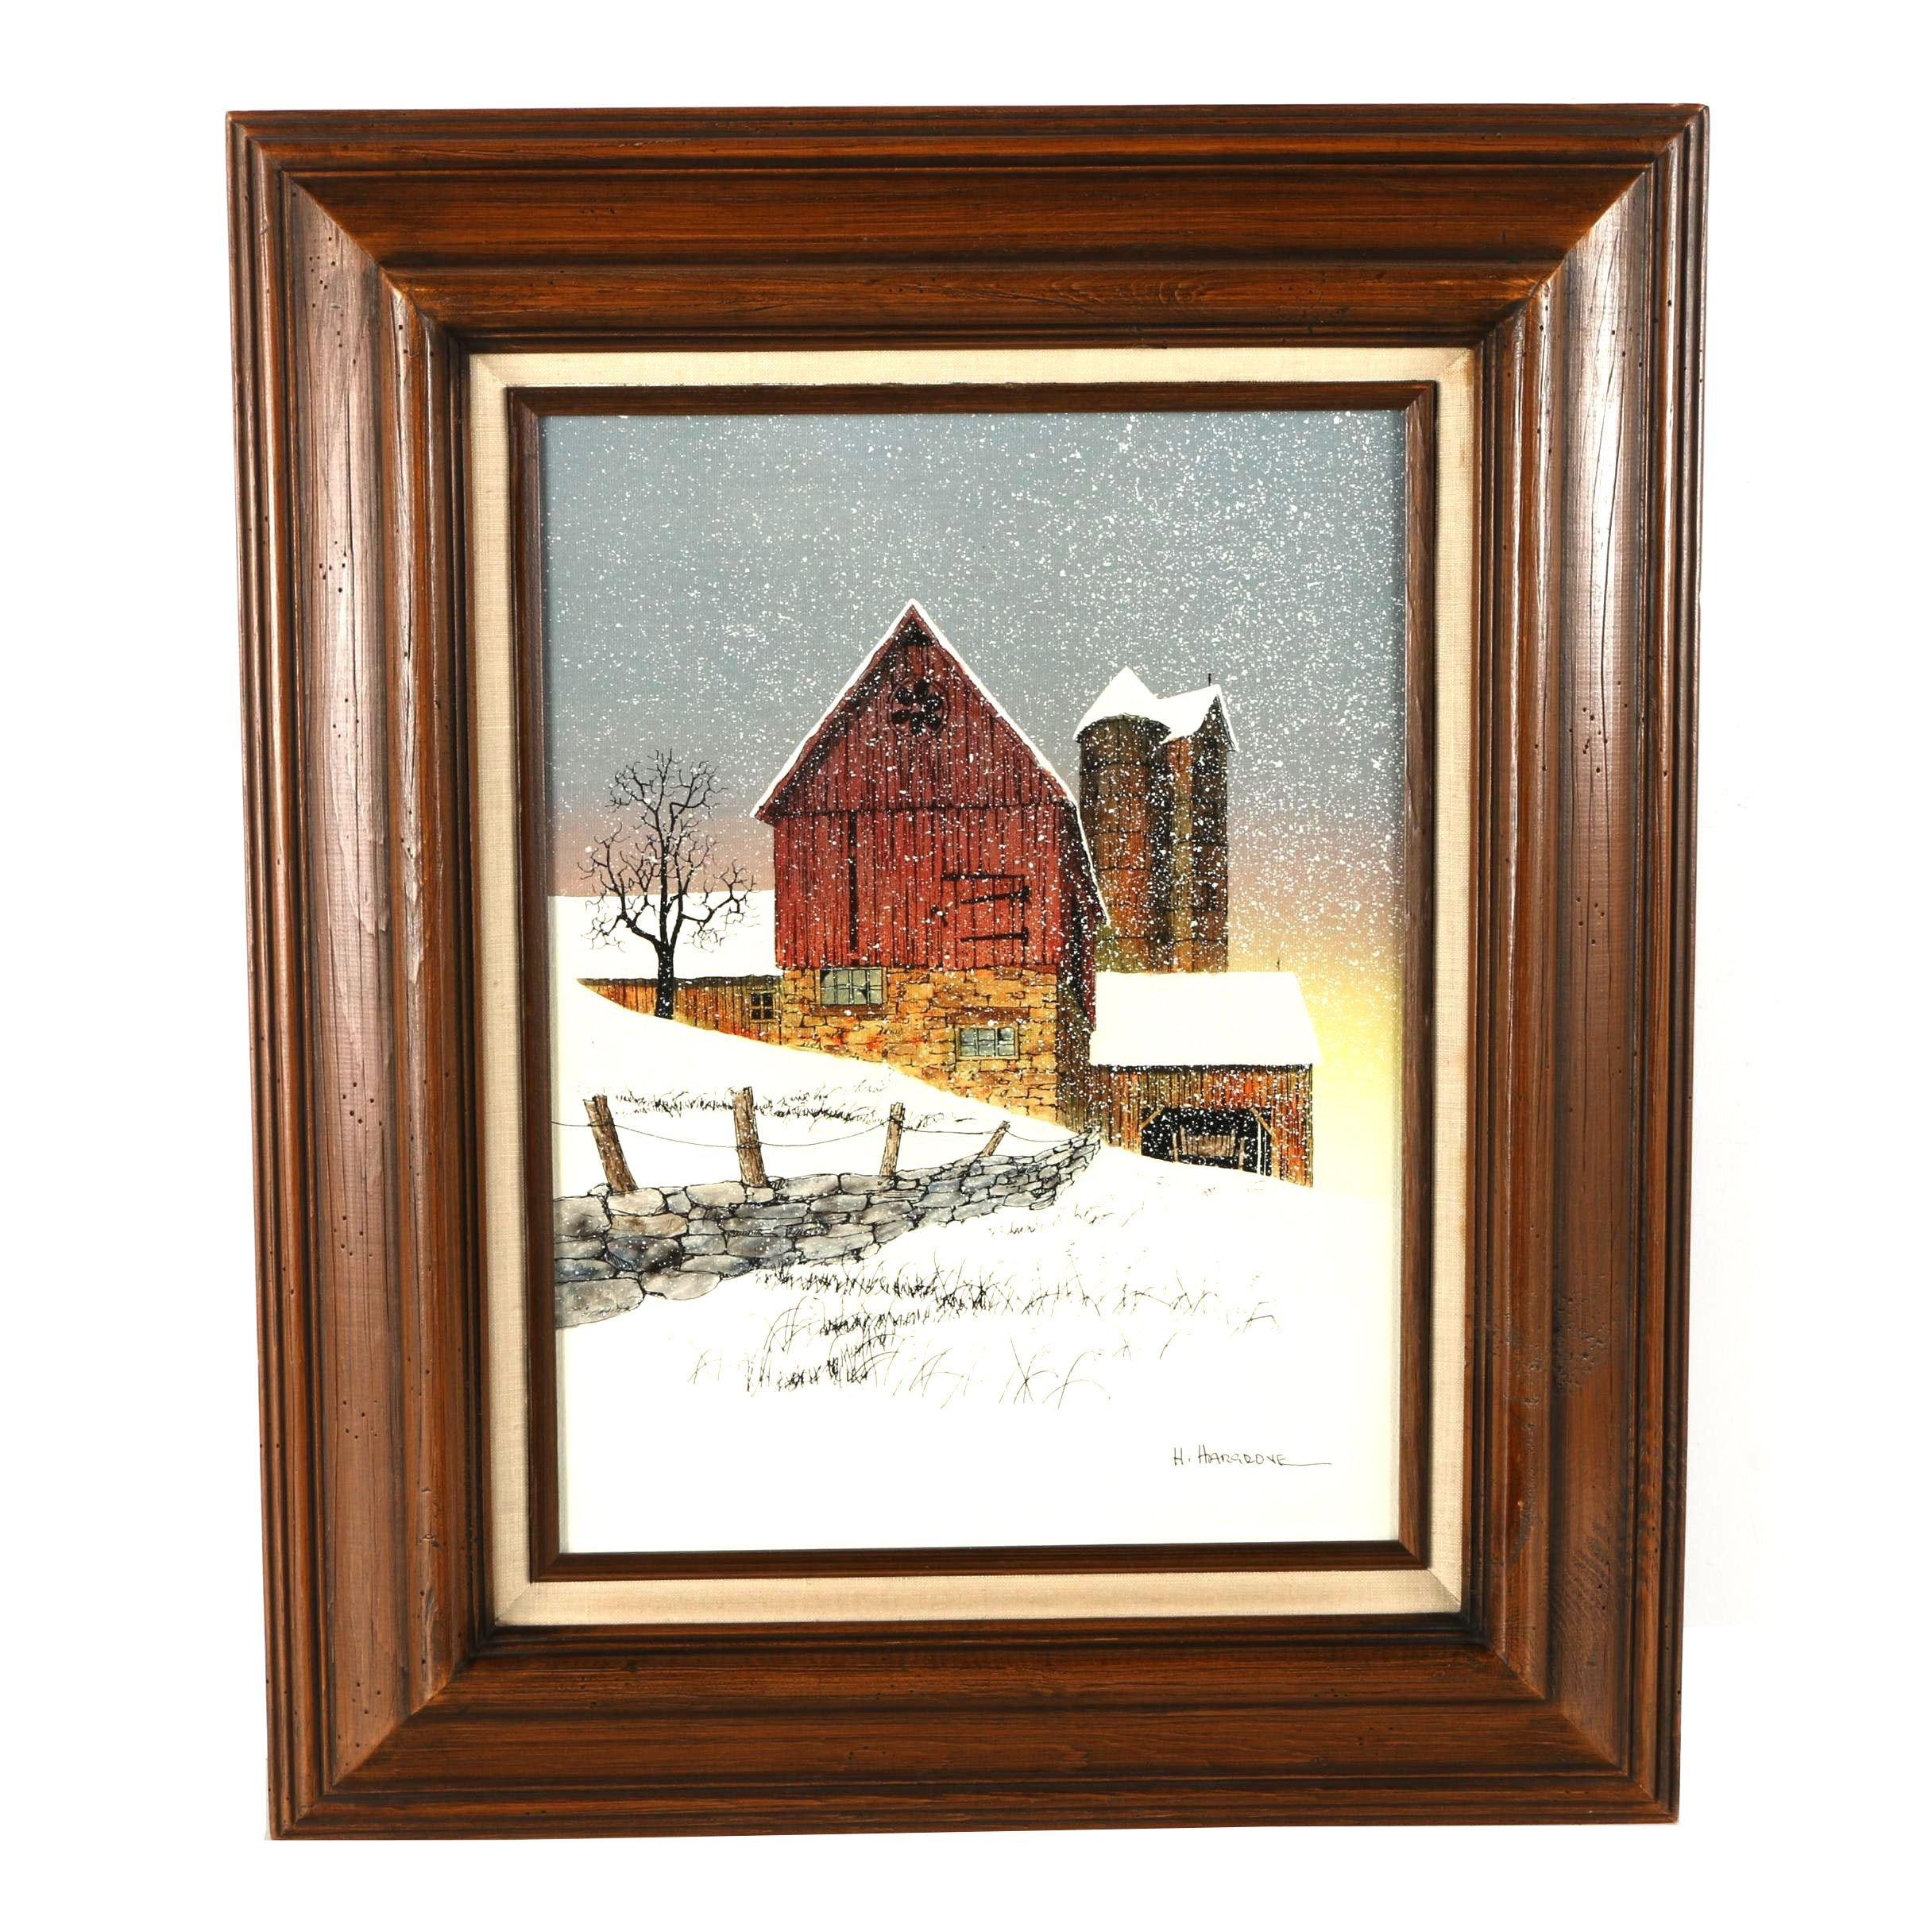 H. Hargrove Serigraph on Canvas of Rural Winterscape